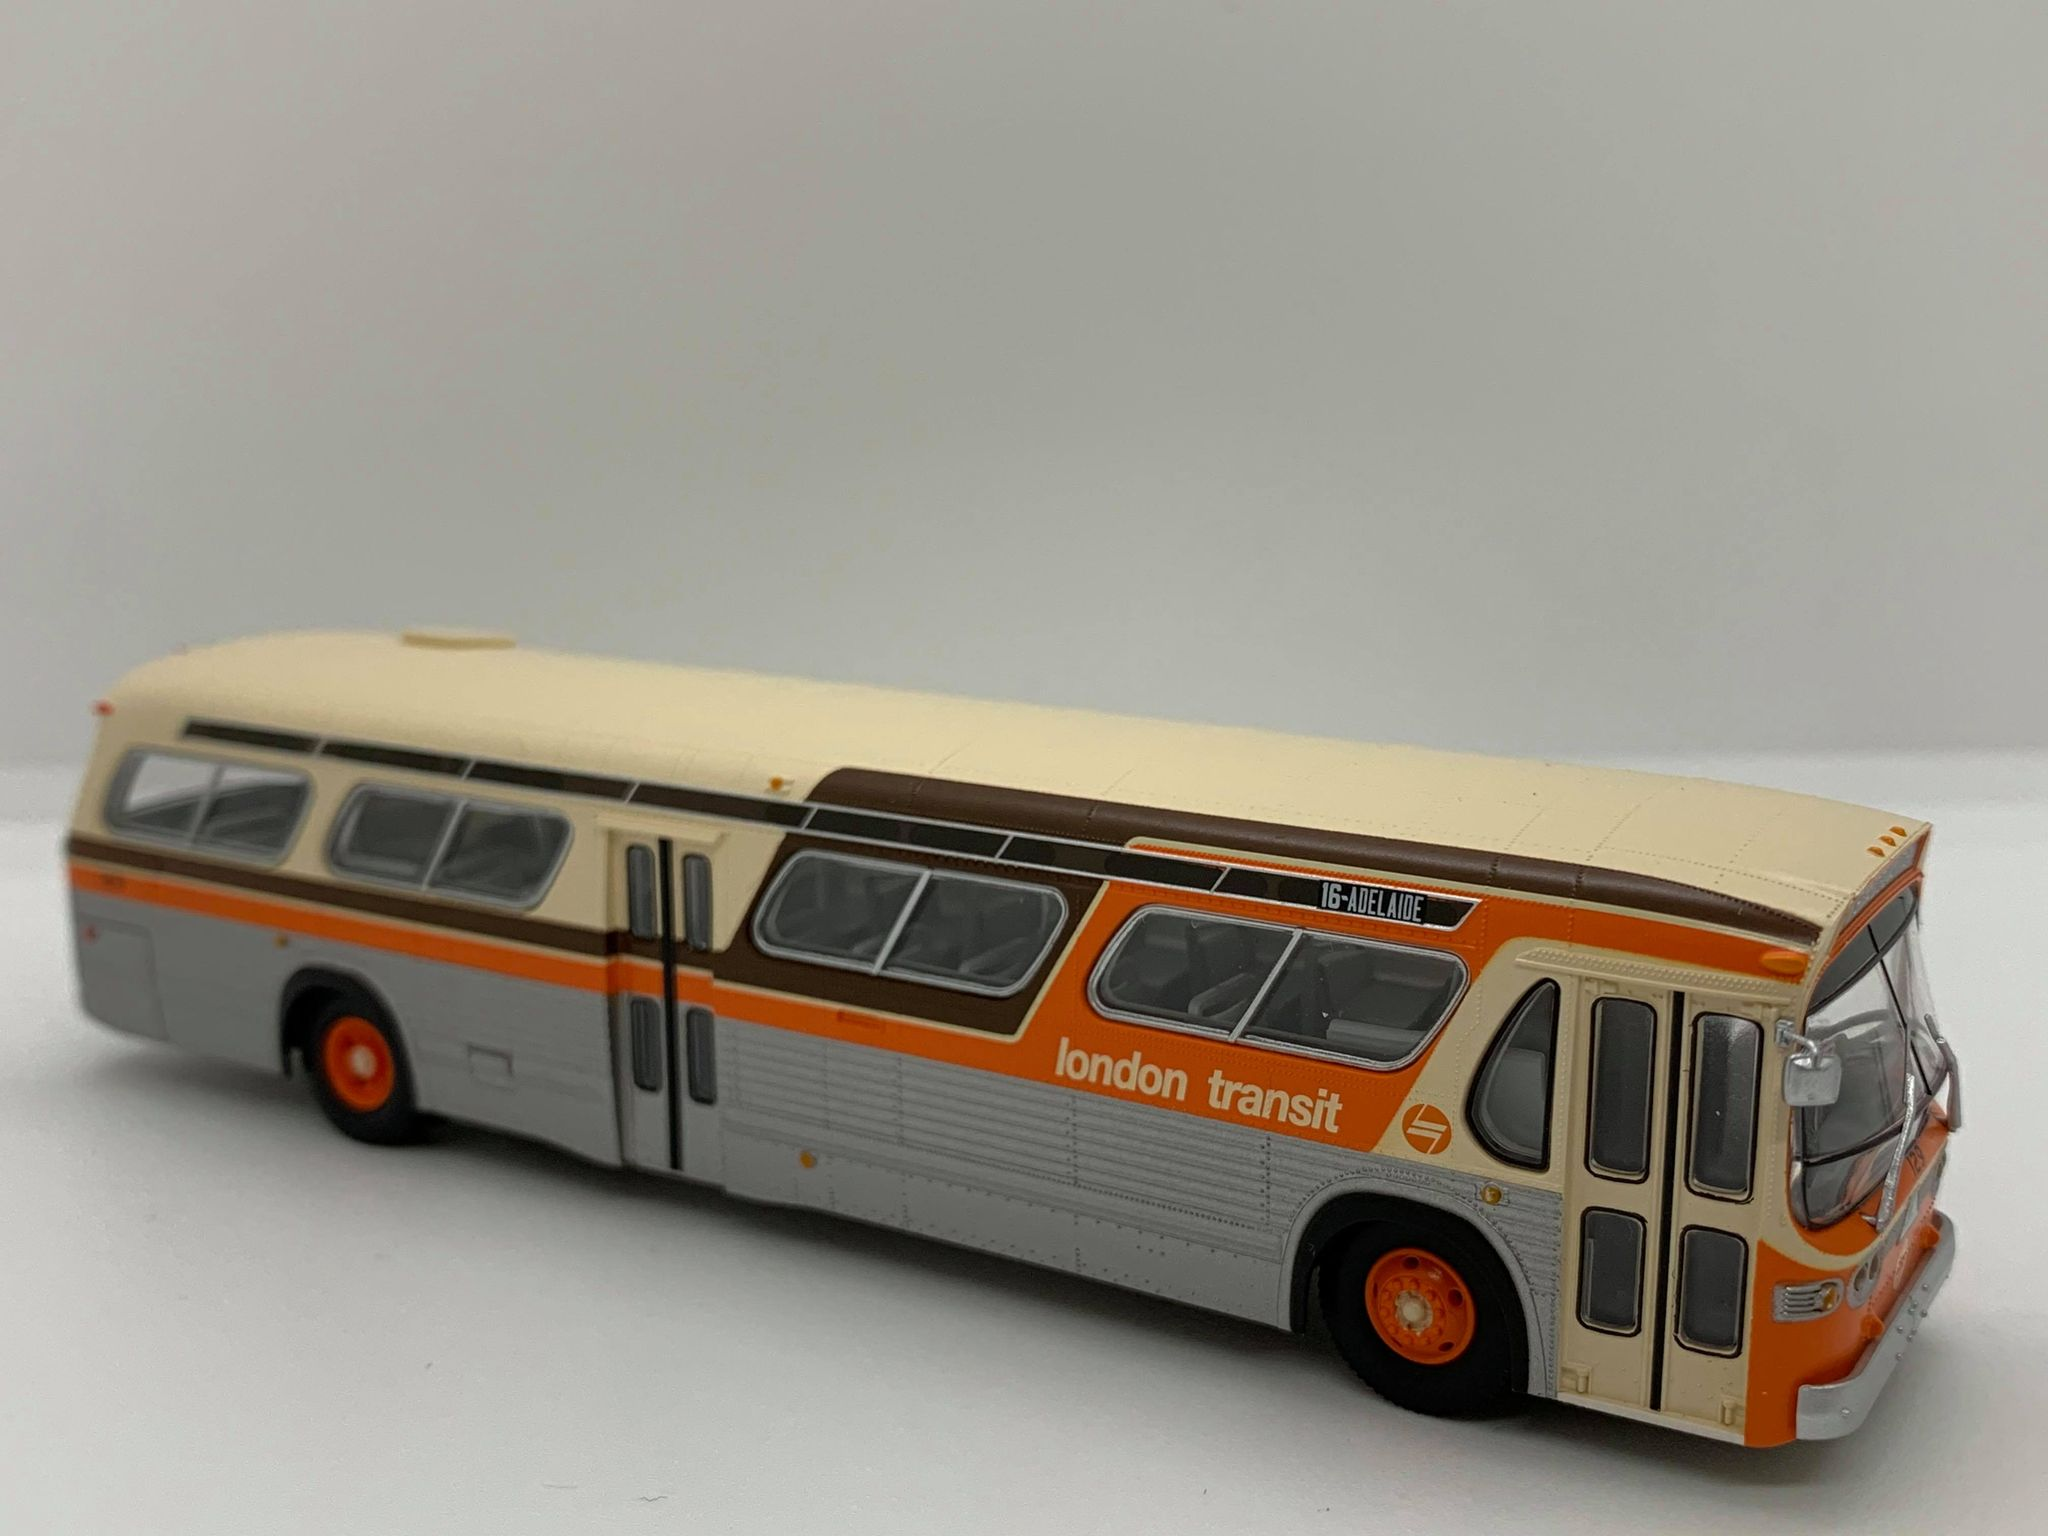 Rapido Trains 753093 HO New Look Bus Exclusive London Transit Commission (Orange/Brown)#129 16 - Adelaide Deluxe